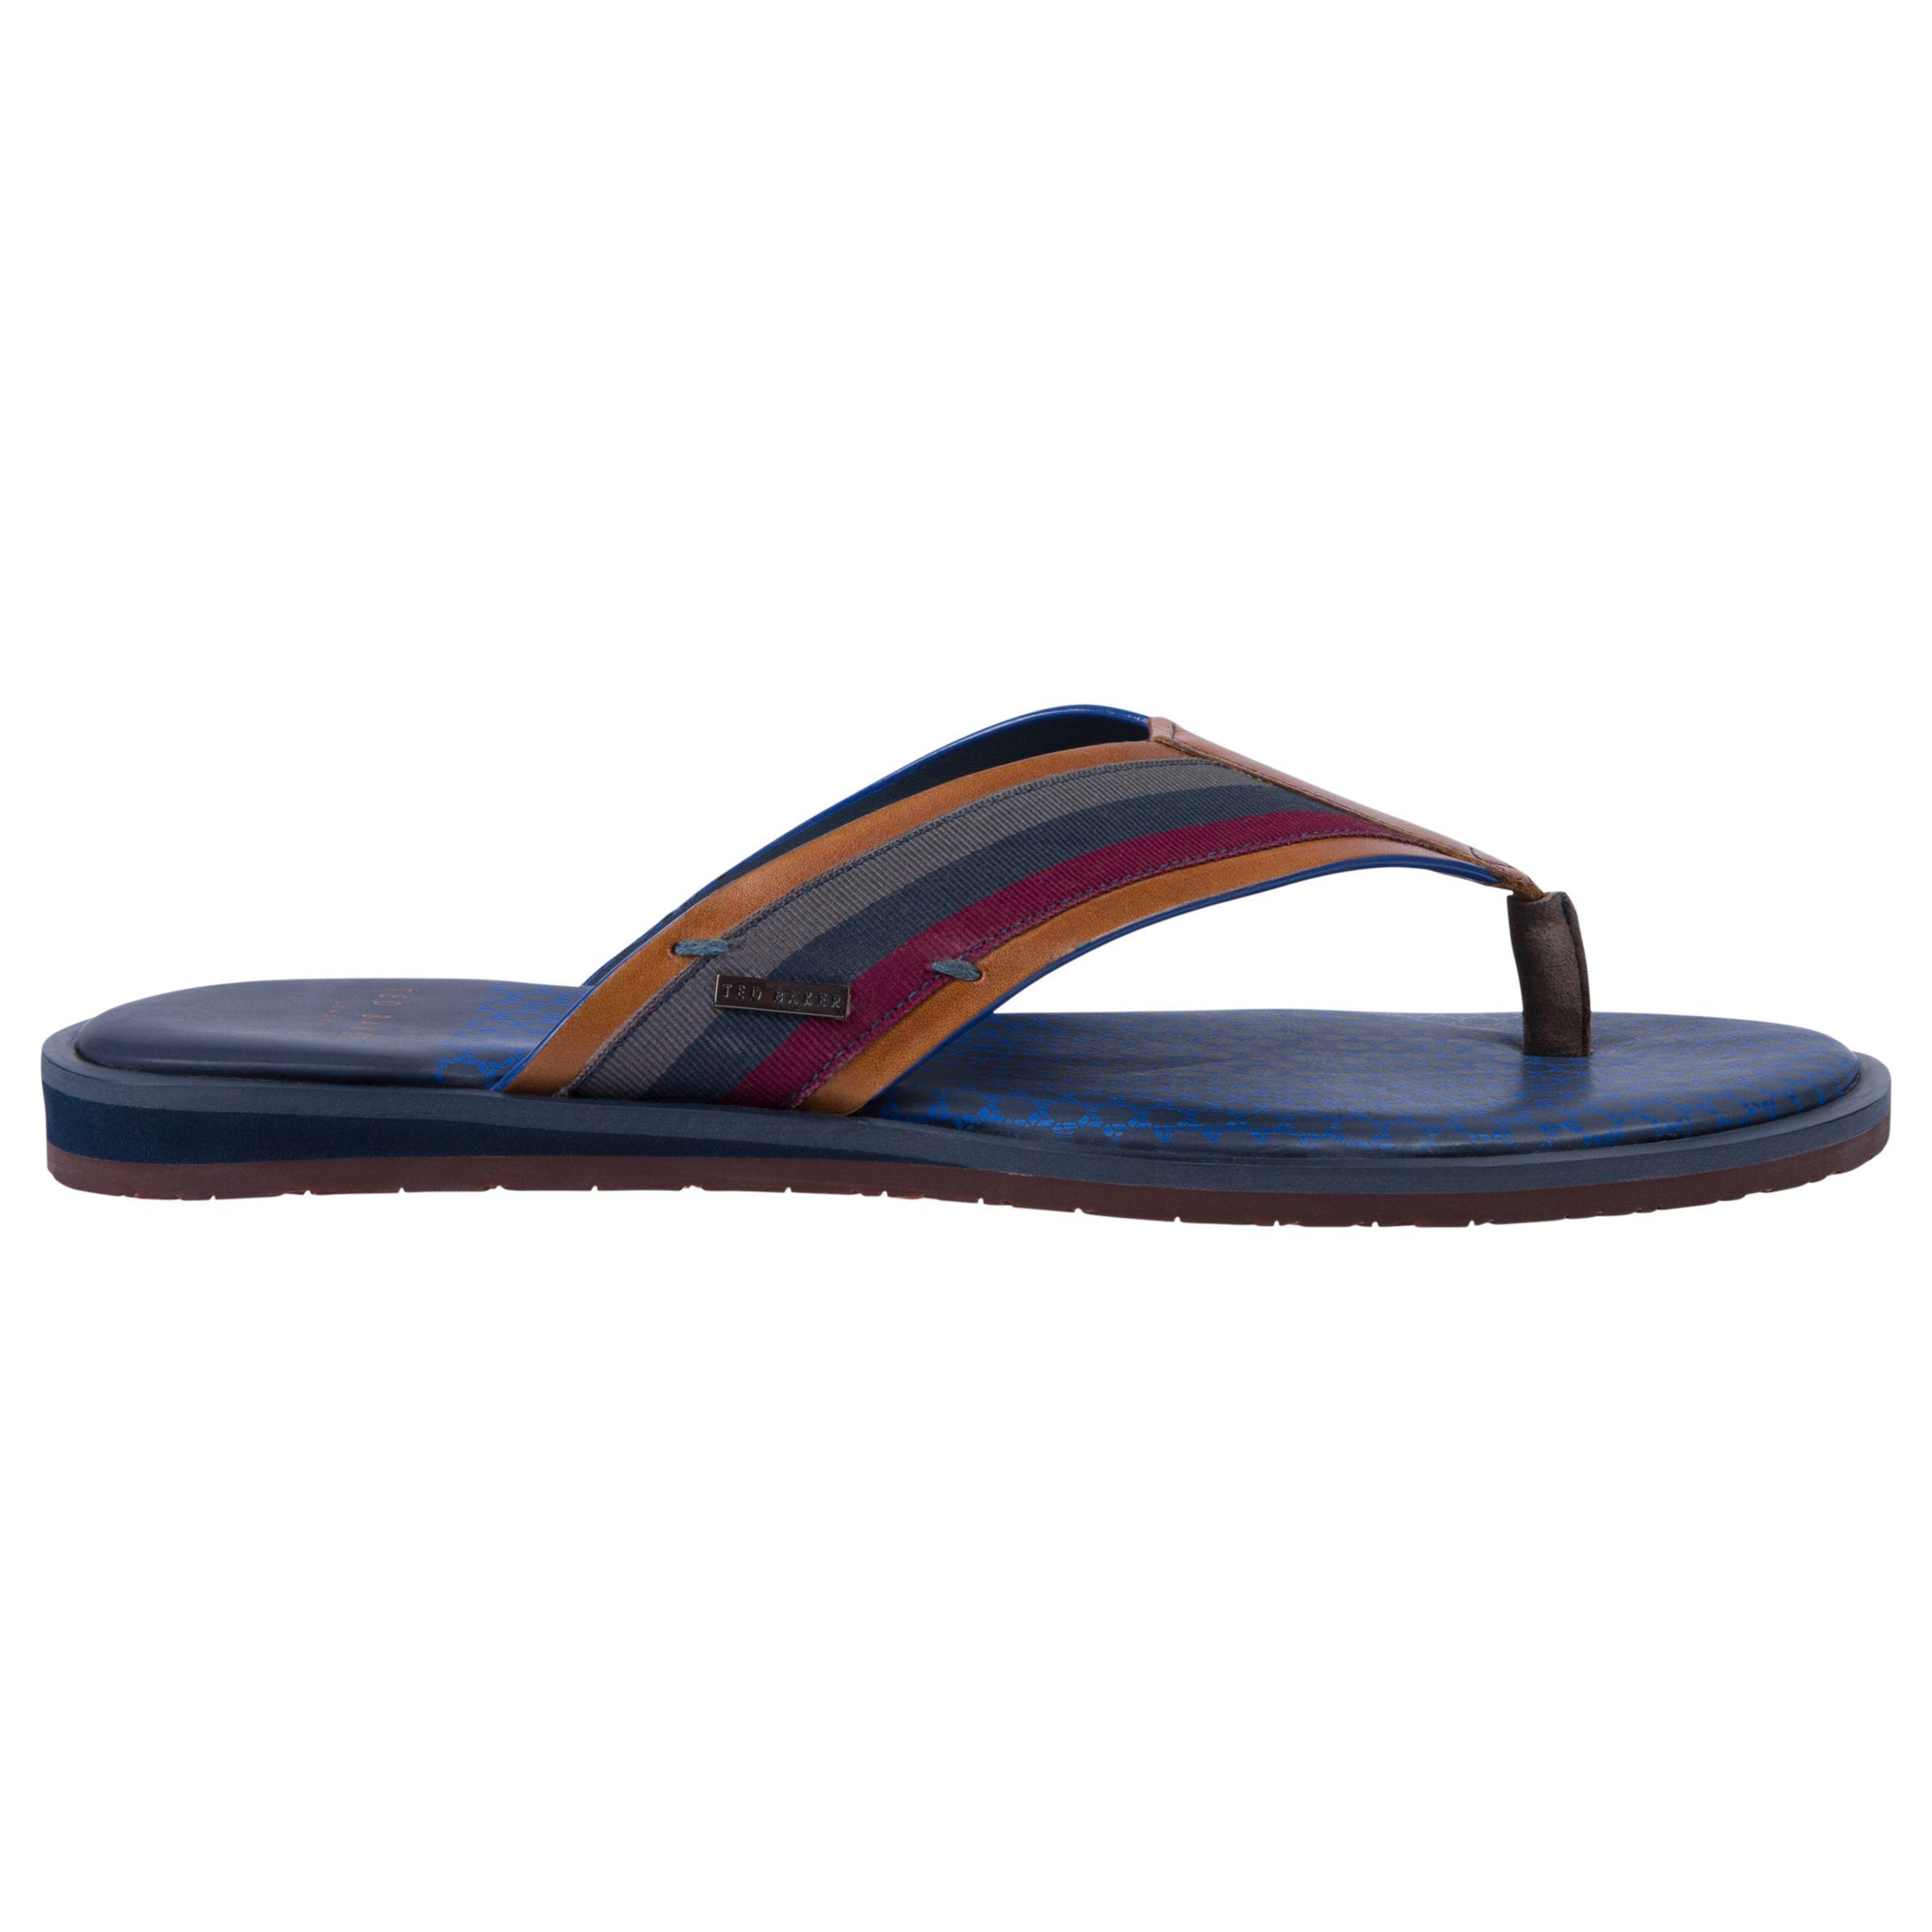 ae6ce937dfa4 Ted Baker Knowlun Toe Post Sandals in Blue for Men - Lyst